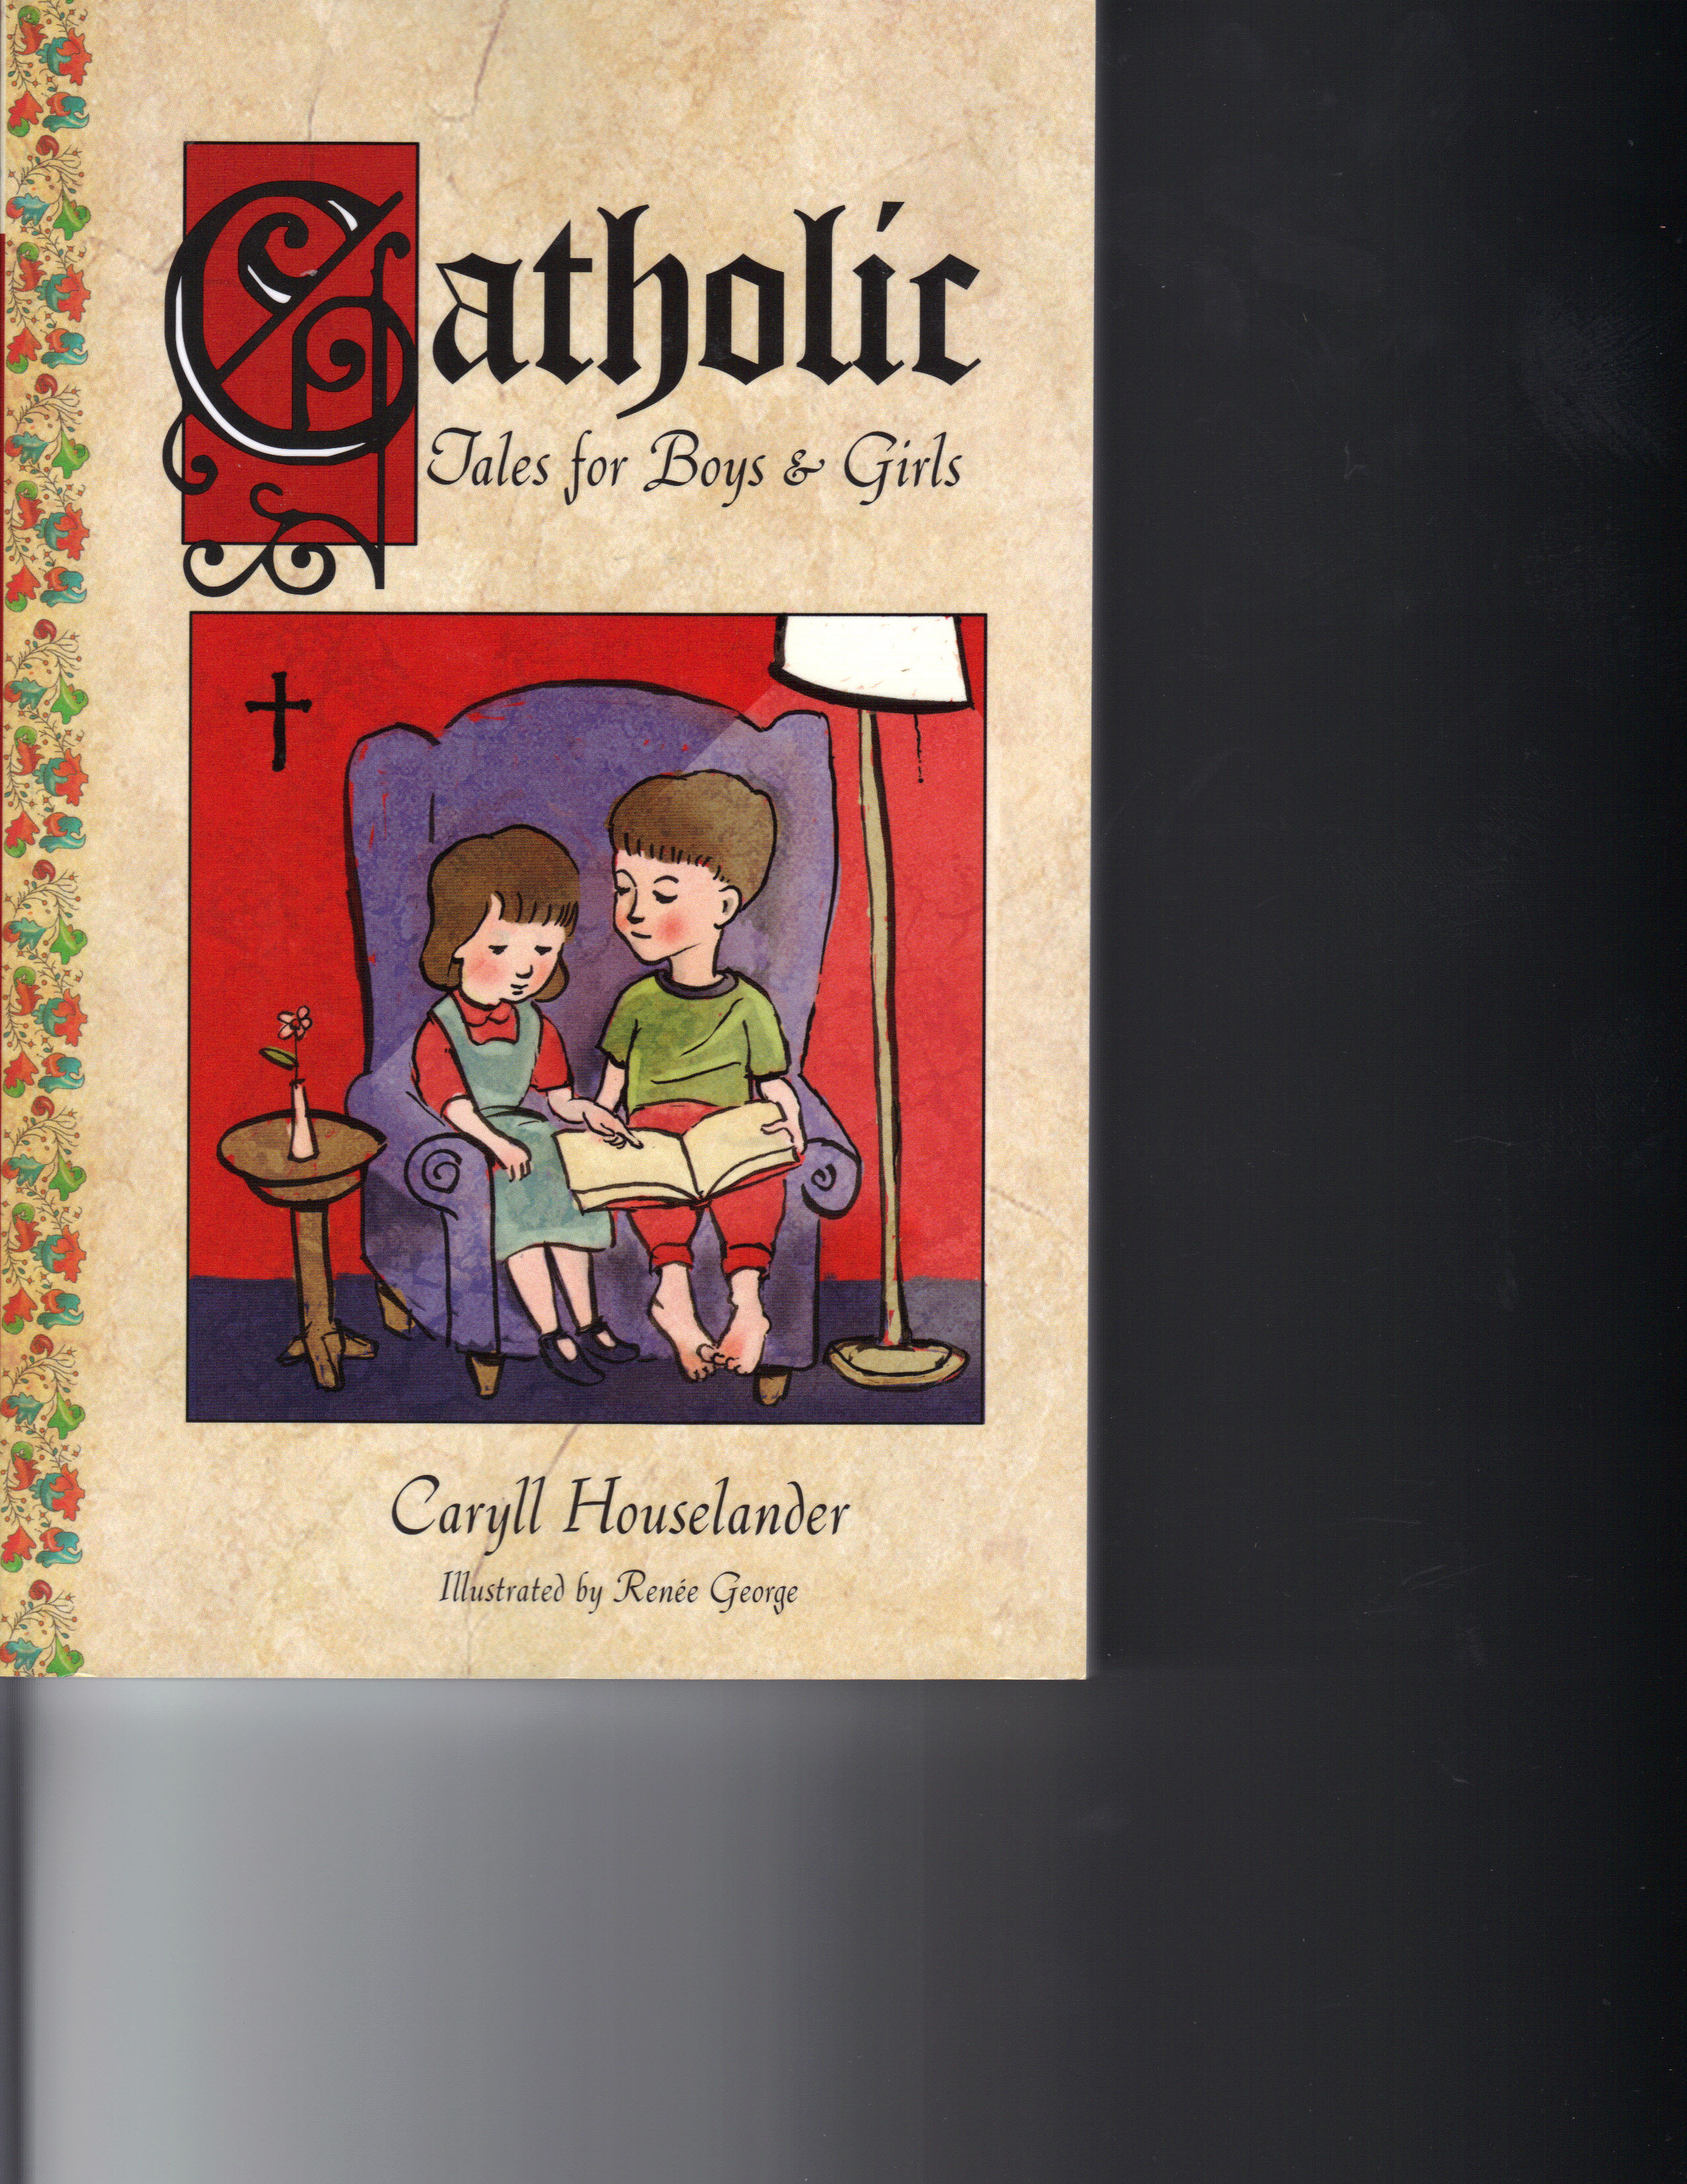 Image for Catholic Tales for Boys & Girls